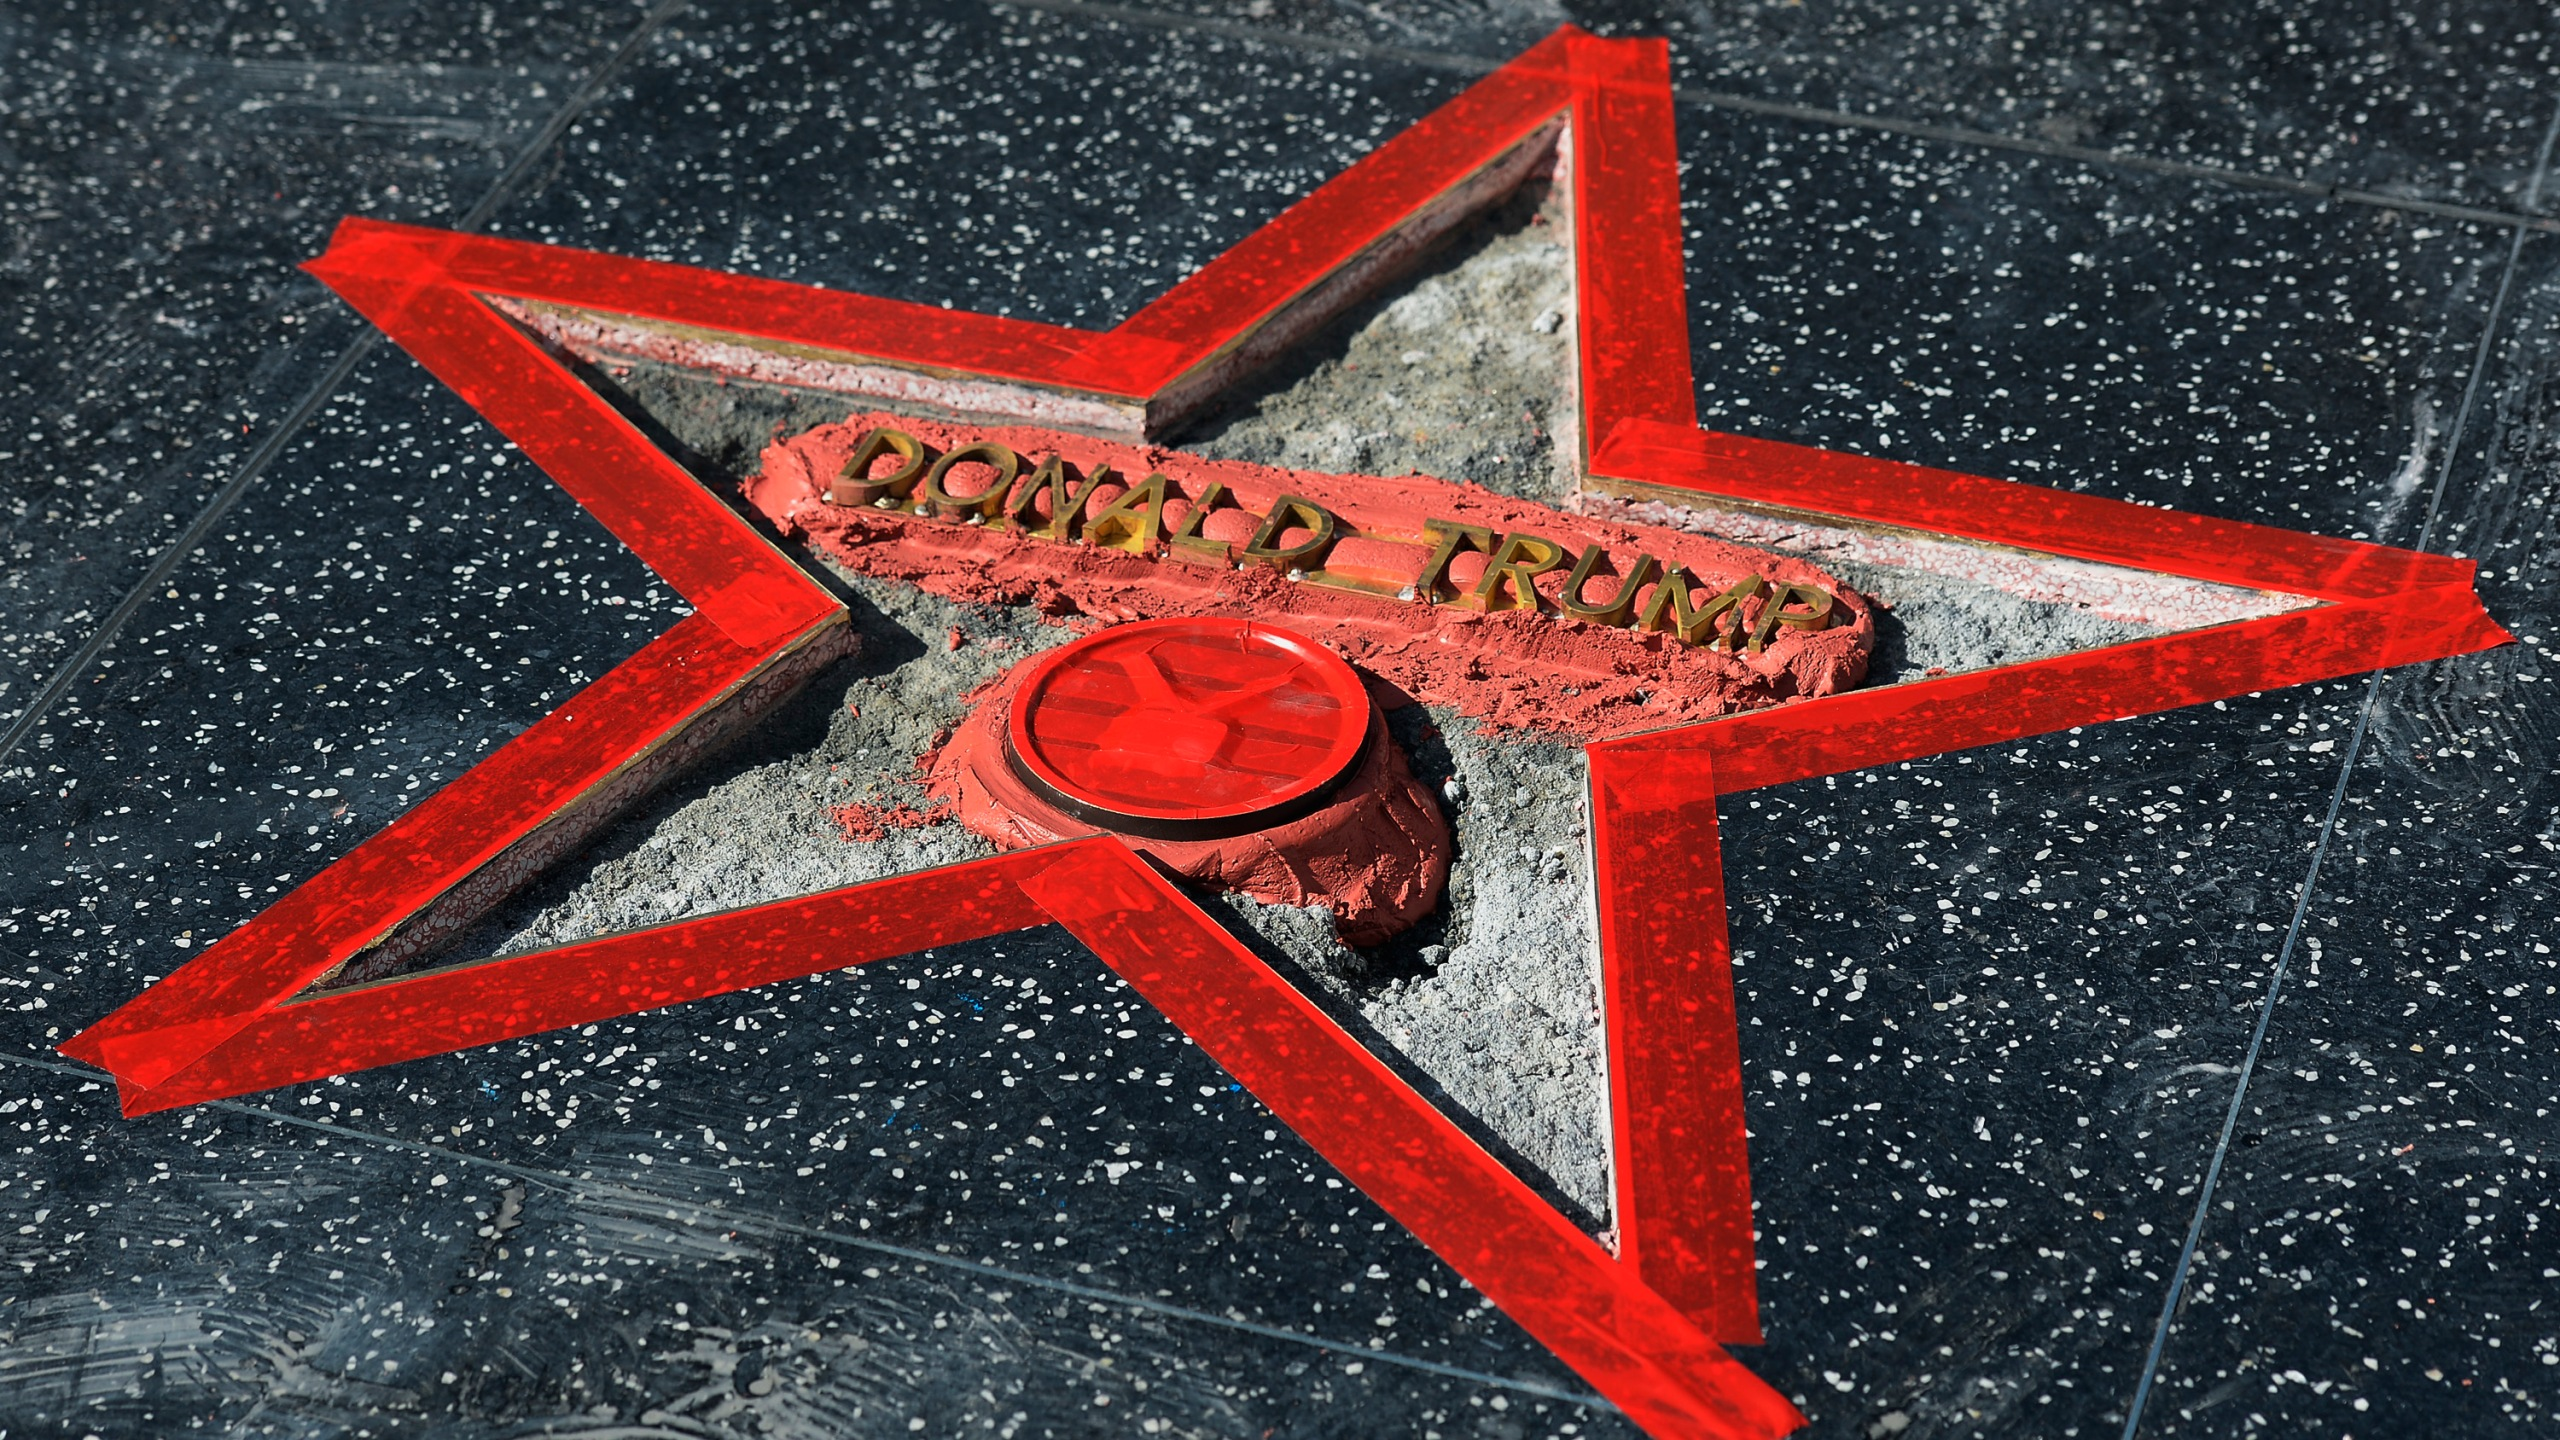 Donald Trump's Hollywood Walk Of Fame Star is repaired after it was vandalized October 26, 2016 in Hollywood. (Credit: Kevork Djansezian/Getty Images)